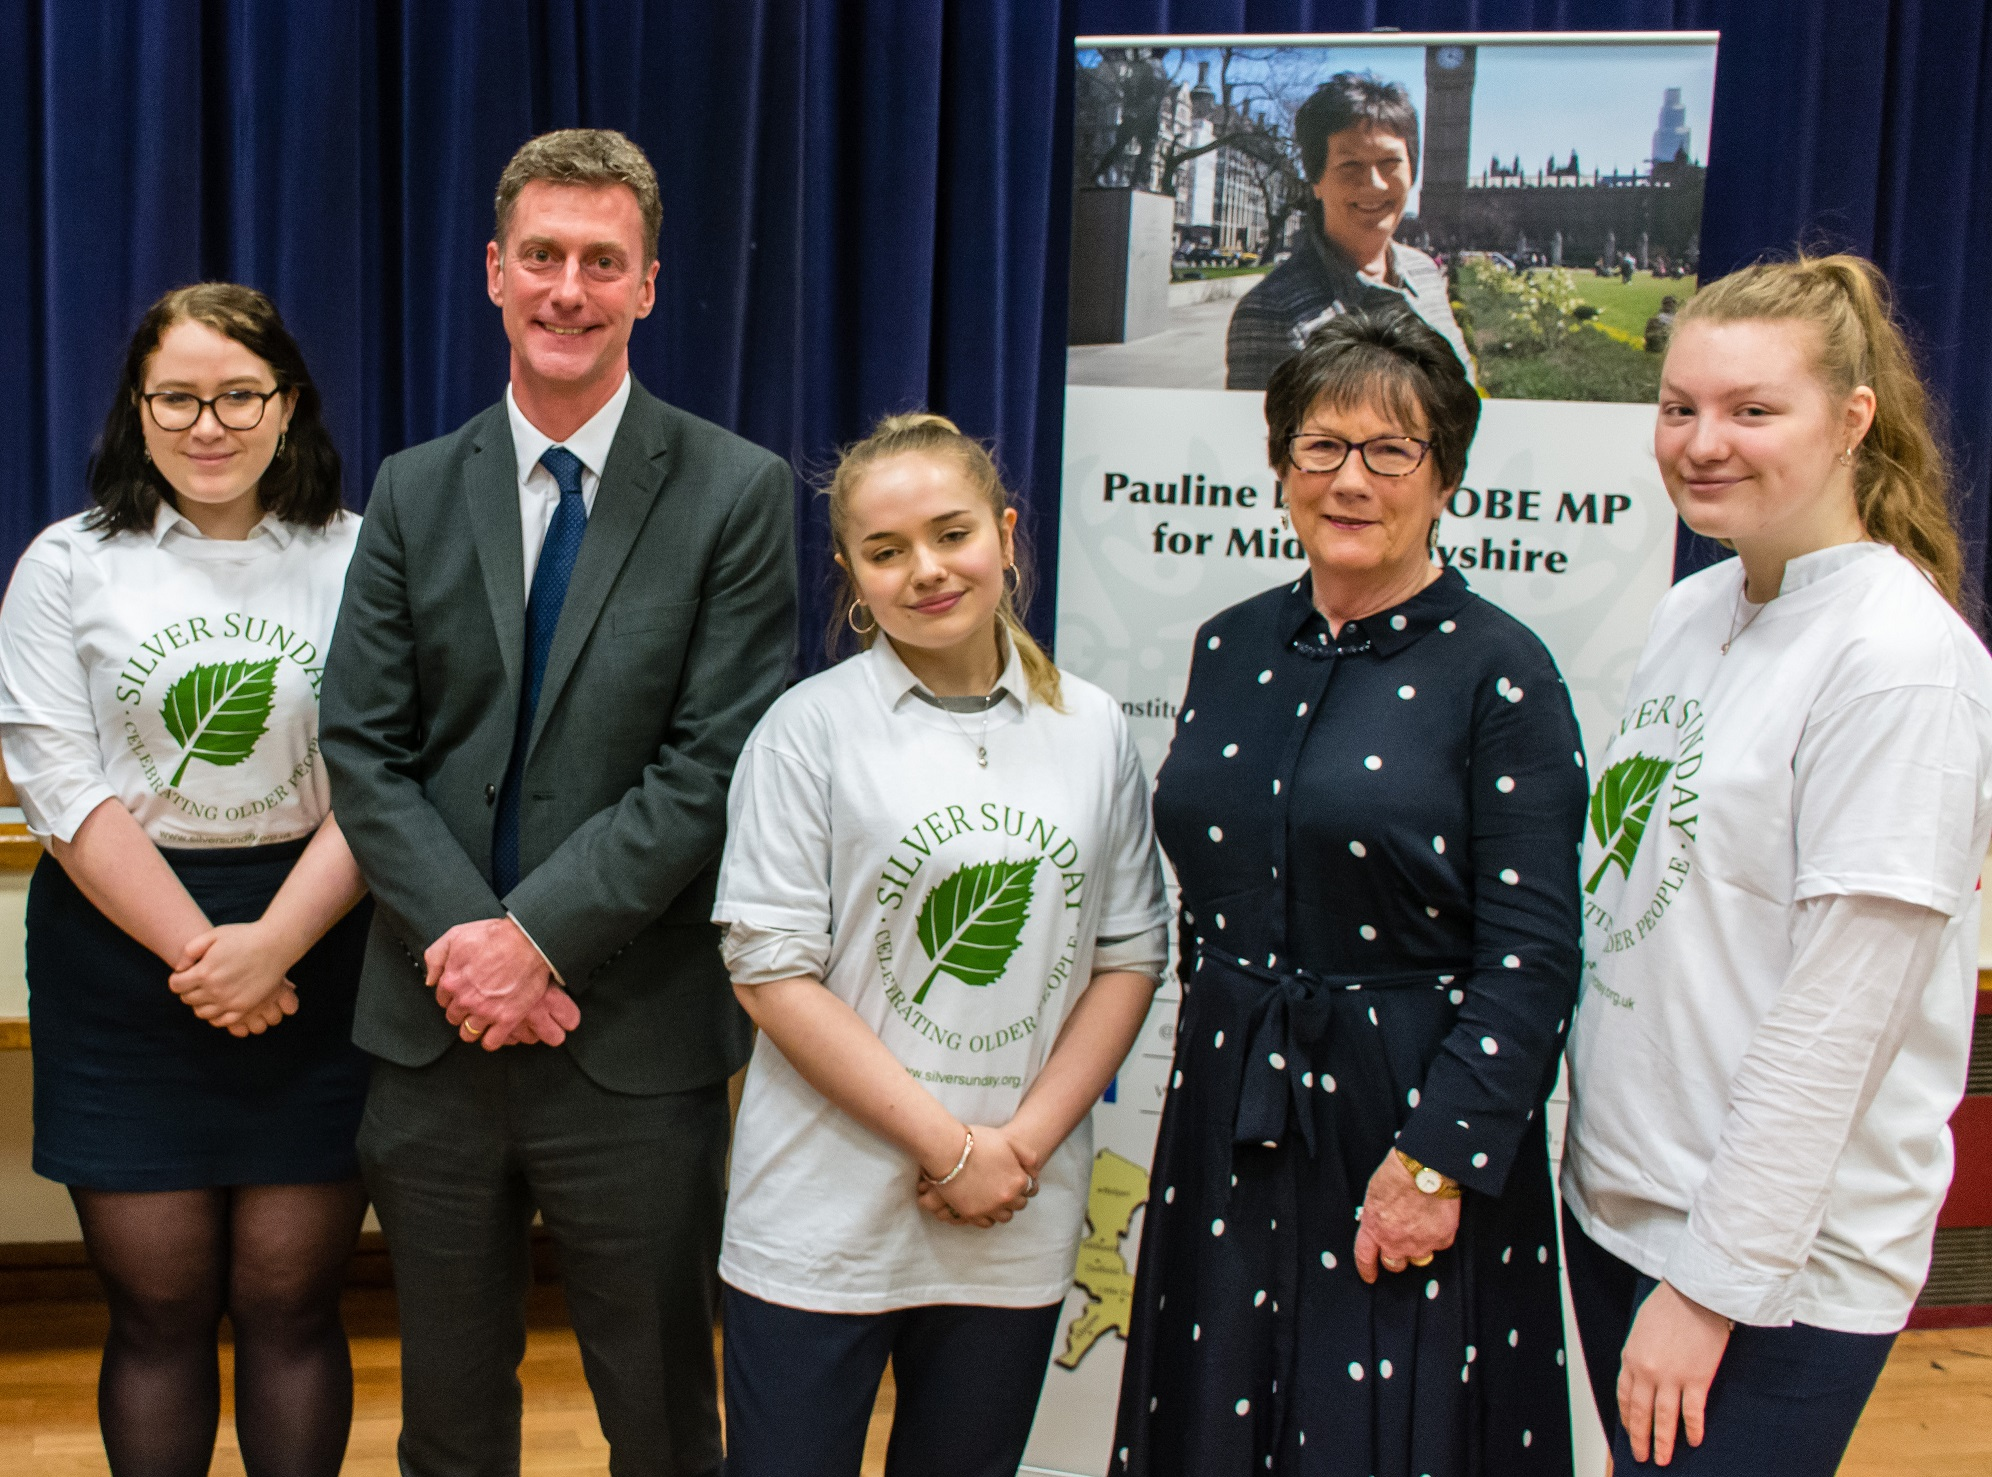 From left, Sixth Form student Lizzie Hart, 17, James McNamara, head teacher of The Ecclesbourne School, student Stella Nicholson, 17, Pauline Latham, MP for Mid Derbyshire, and Sixth Former Annabel Nicholls, 17. Penguin PR: public relations, communications and media.